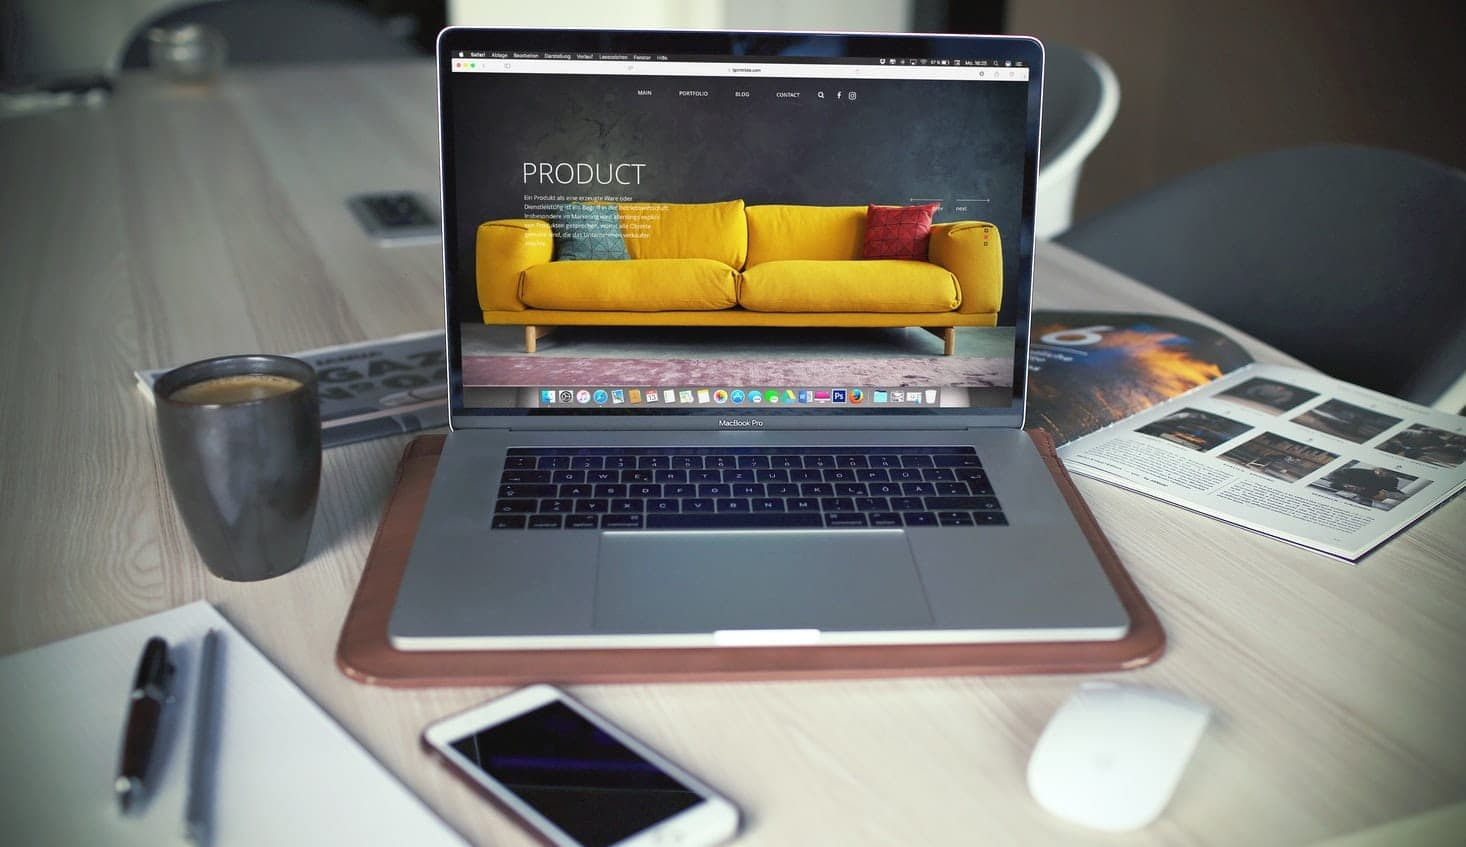 Apple Macbook and iPhone with website of sofa company